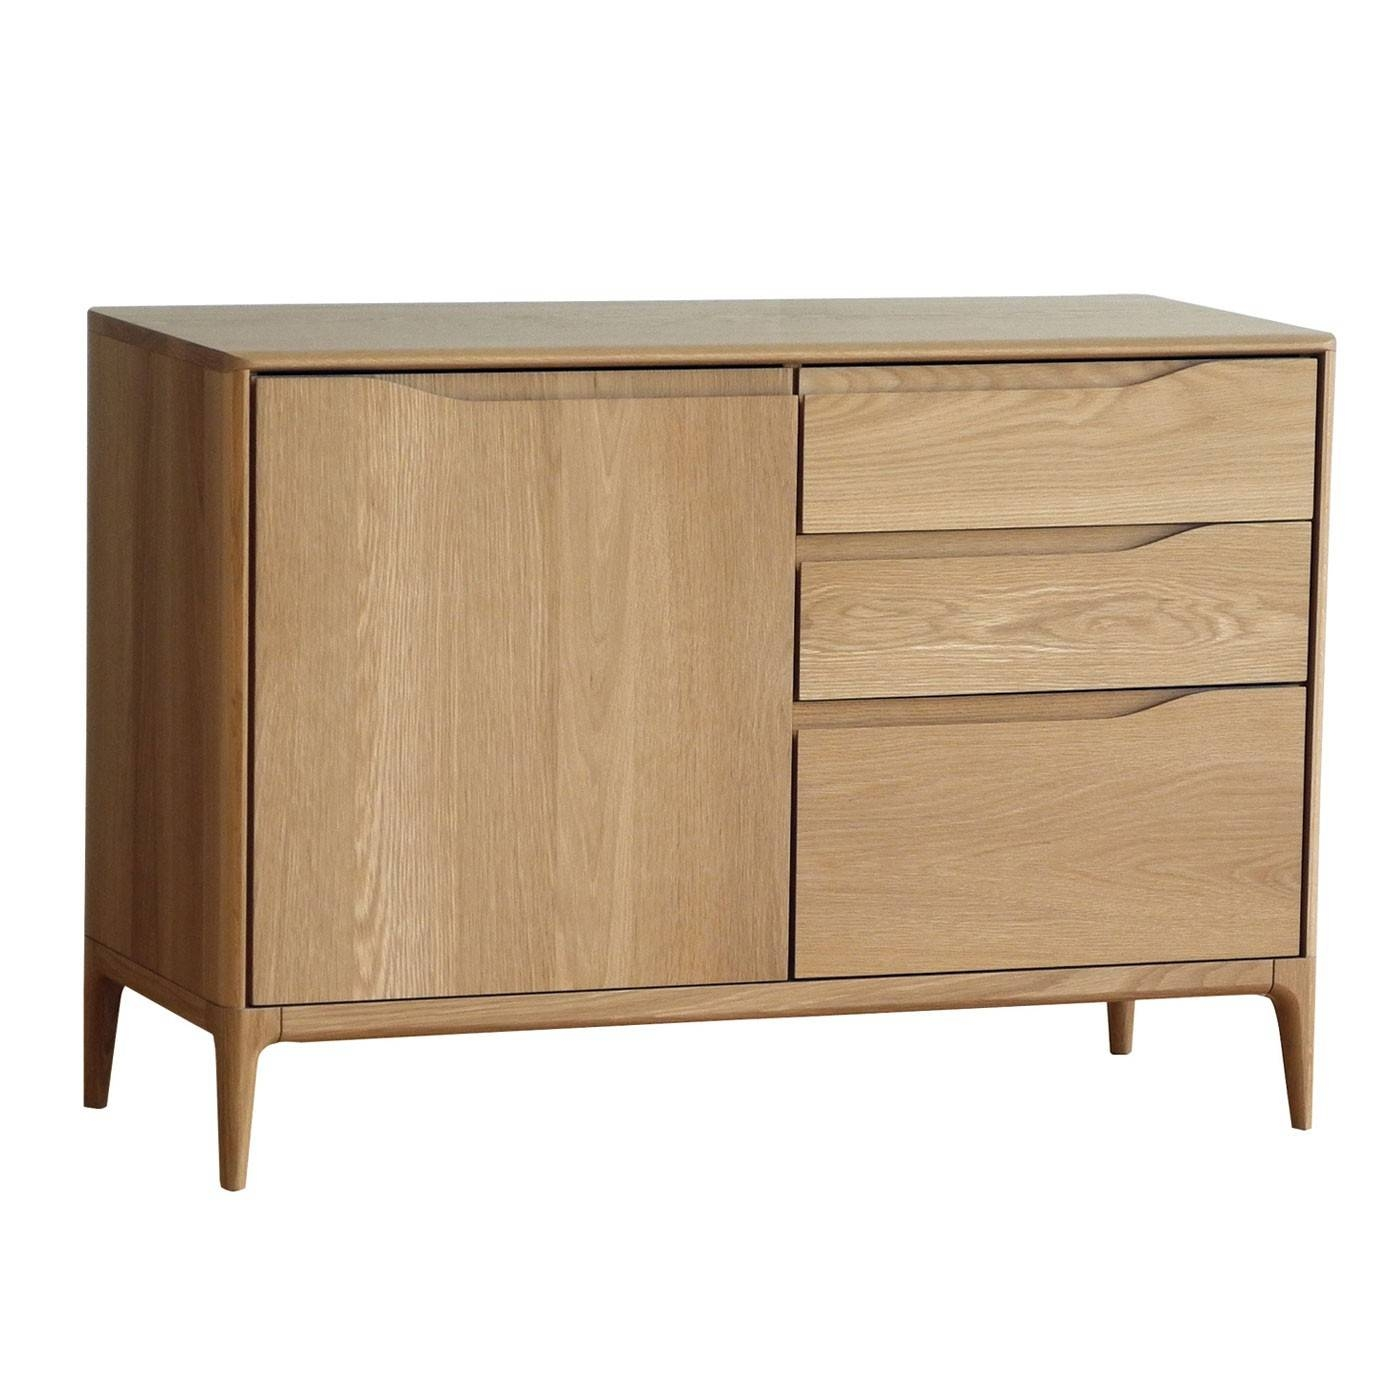 Ercol Romana Sideboard in Small Wooden Sideboards (Image 14 of 30)